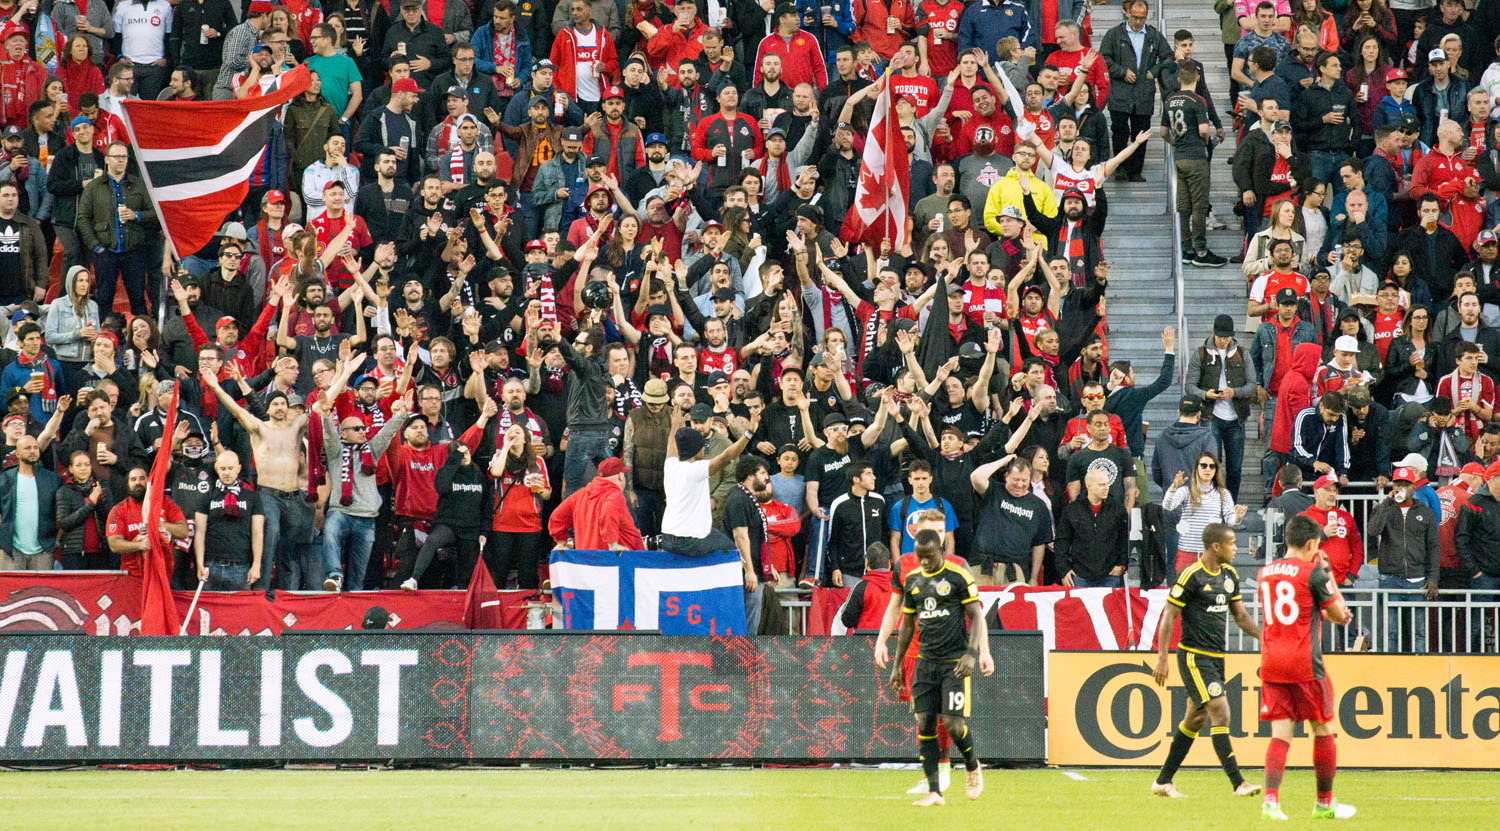 The South End Supporter's section celebrating. Image by Dennis Marciniak of denMAR Media.